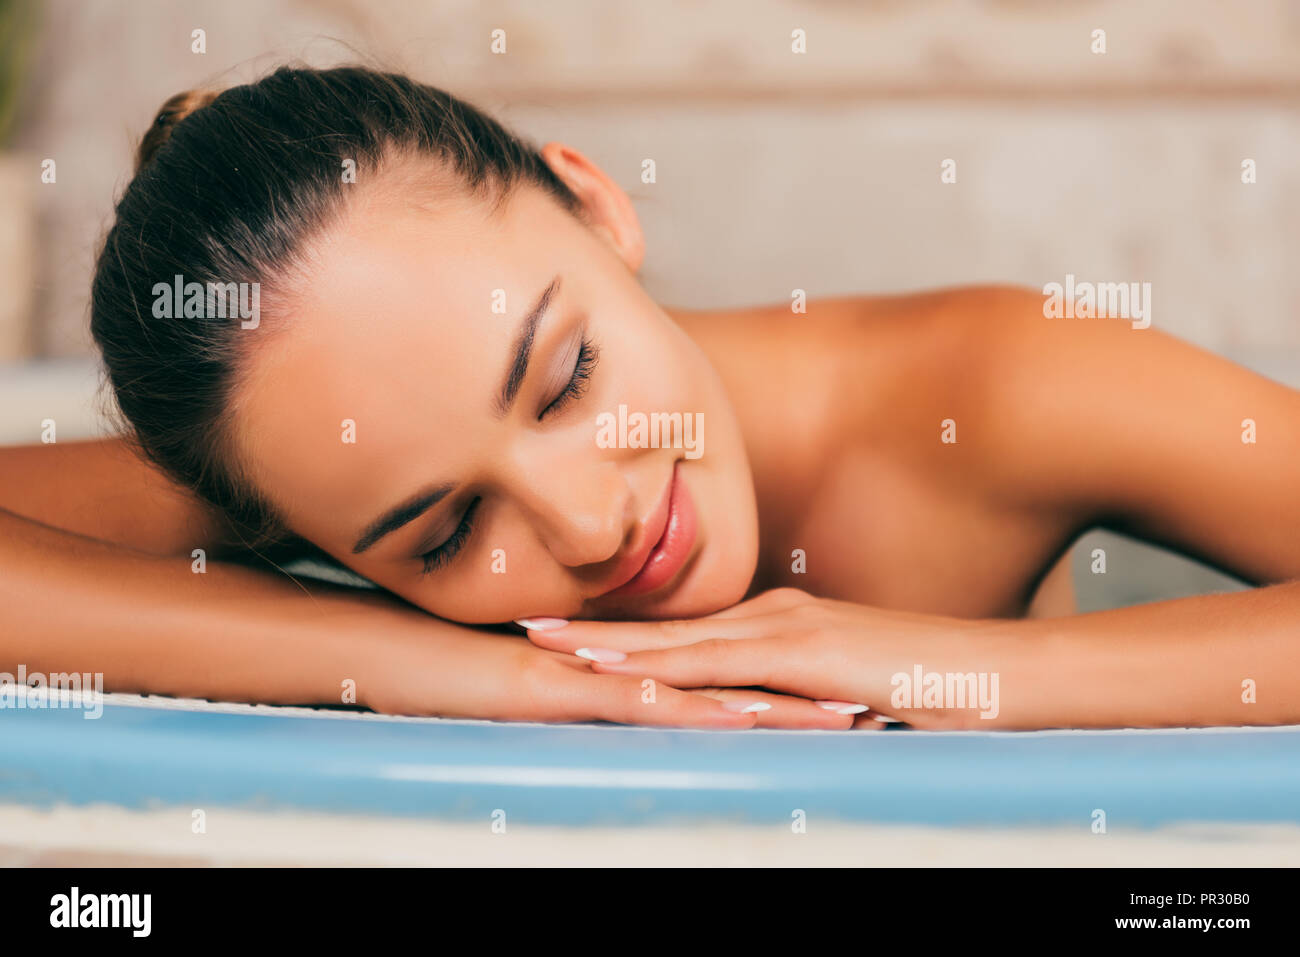 woman relaxing with closed eyes at spa salon - Stock Image